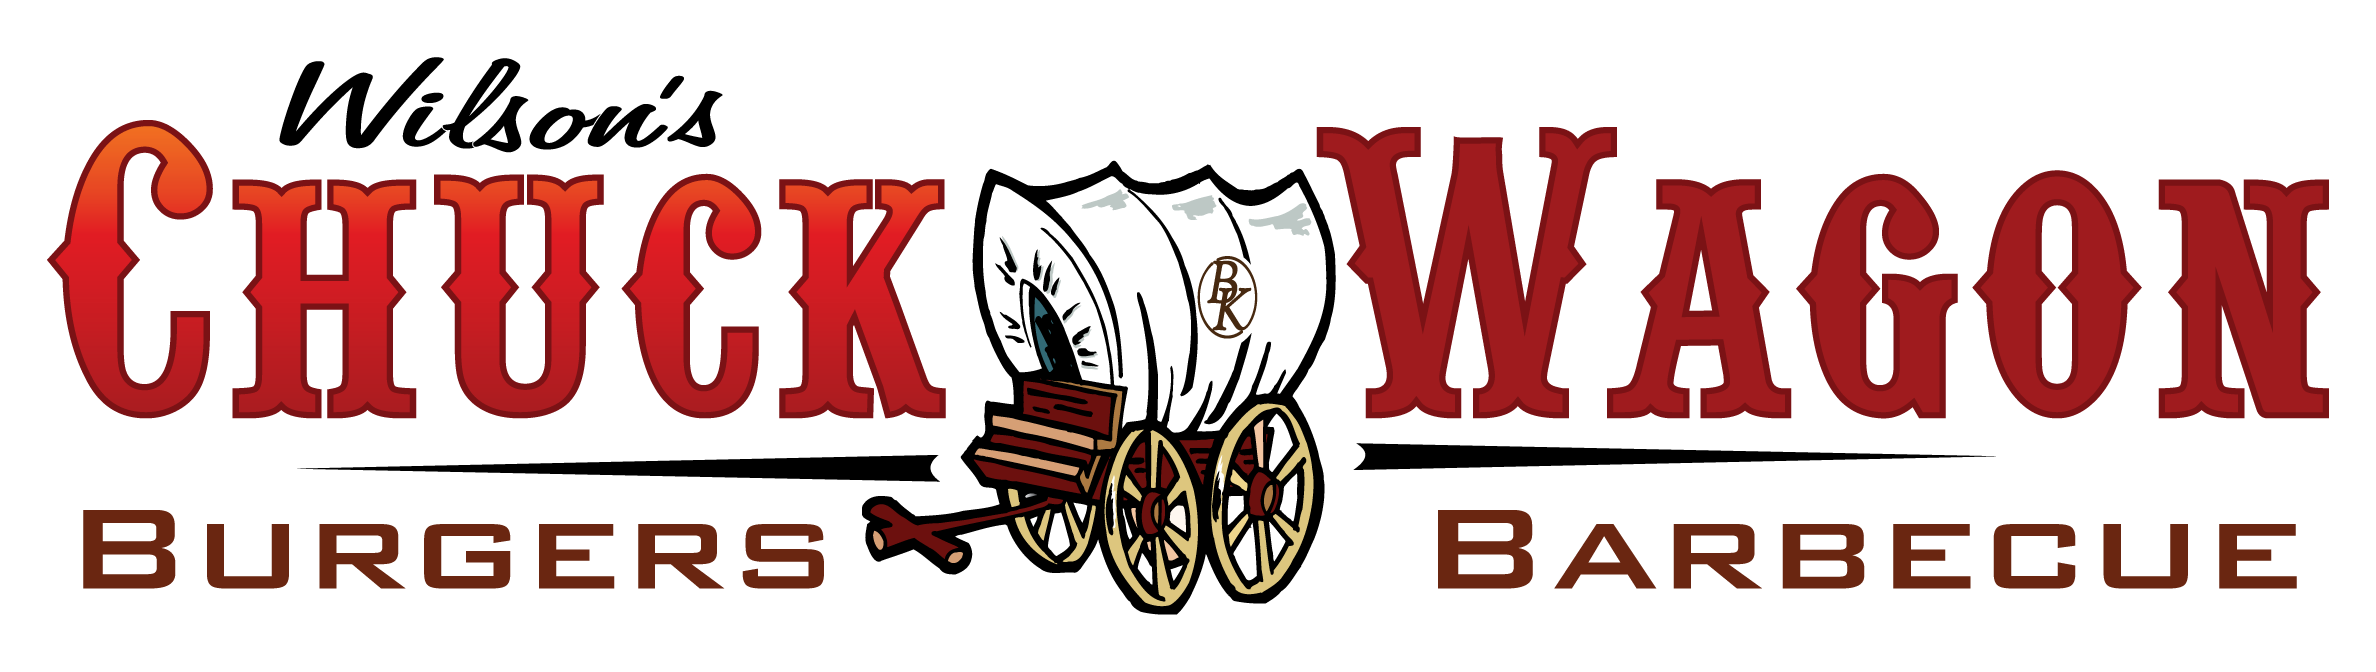 Wilson's Chuckwagon